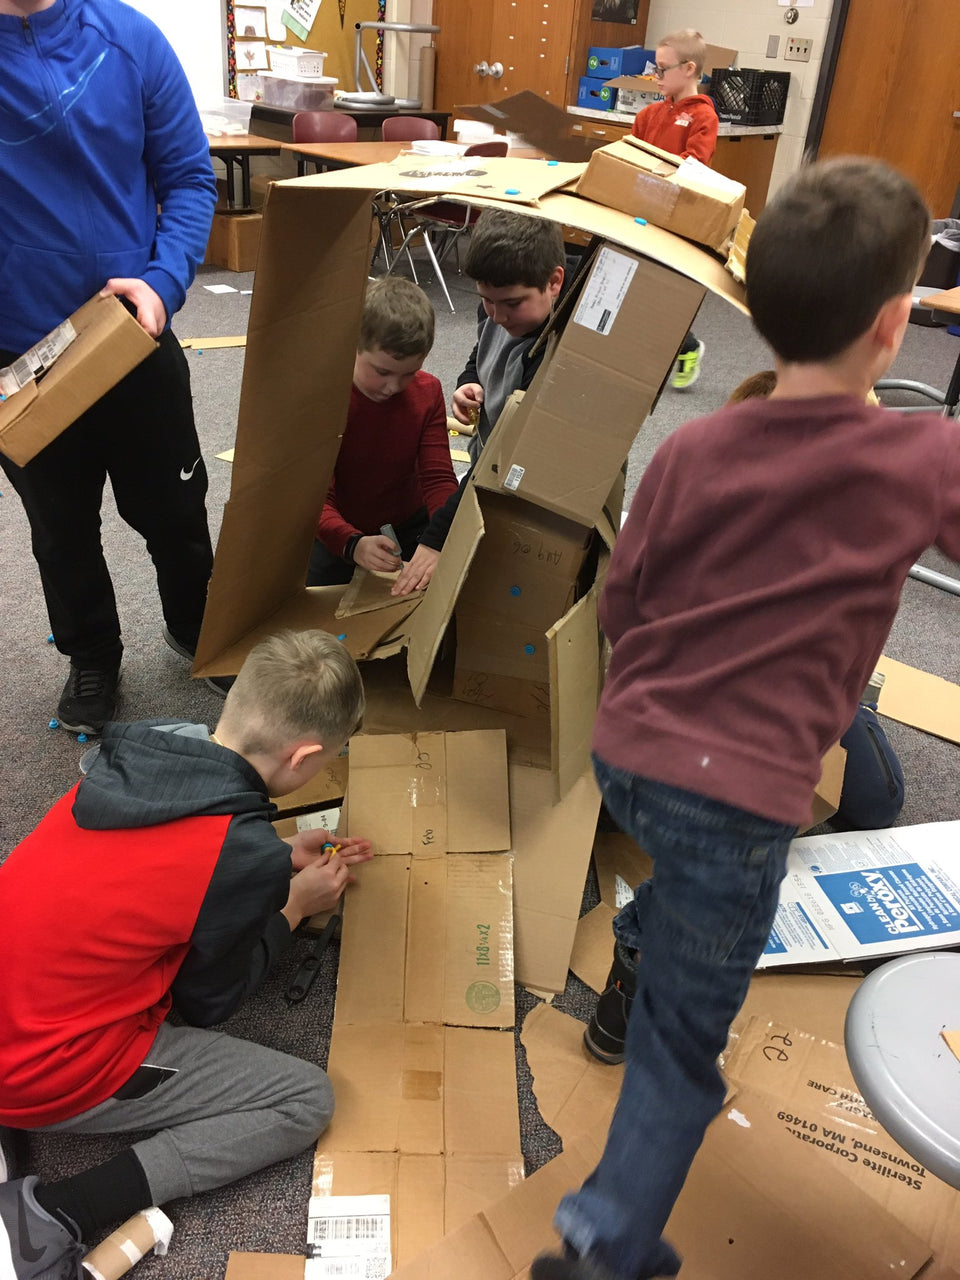 Building the tallest cardboard tower with Makedo tools.